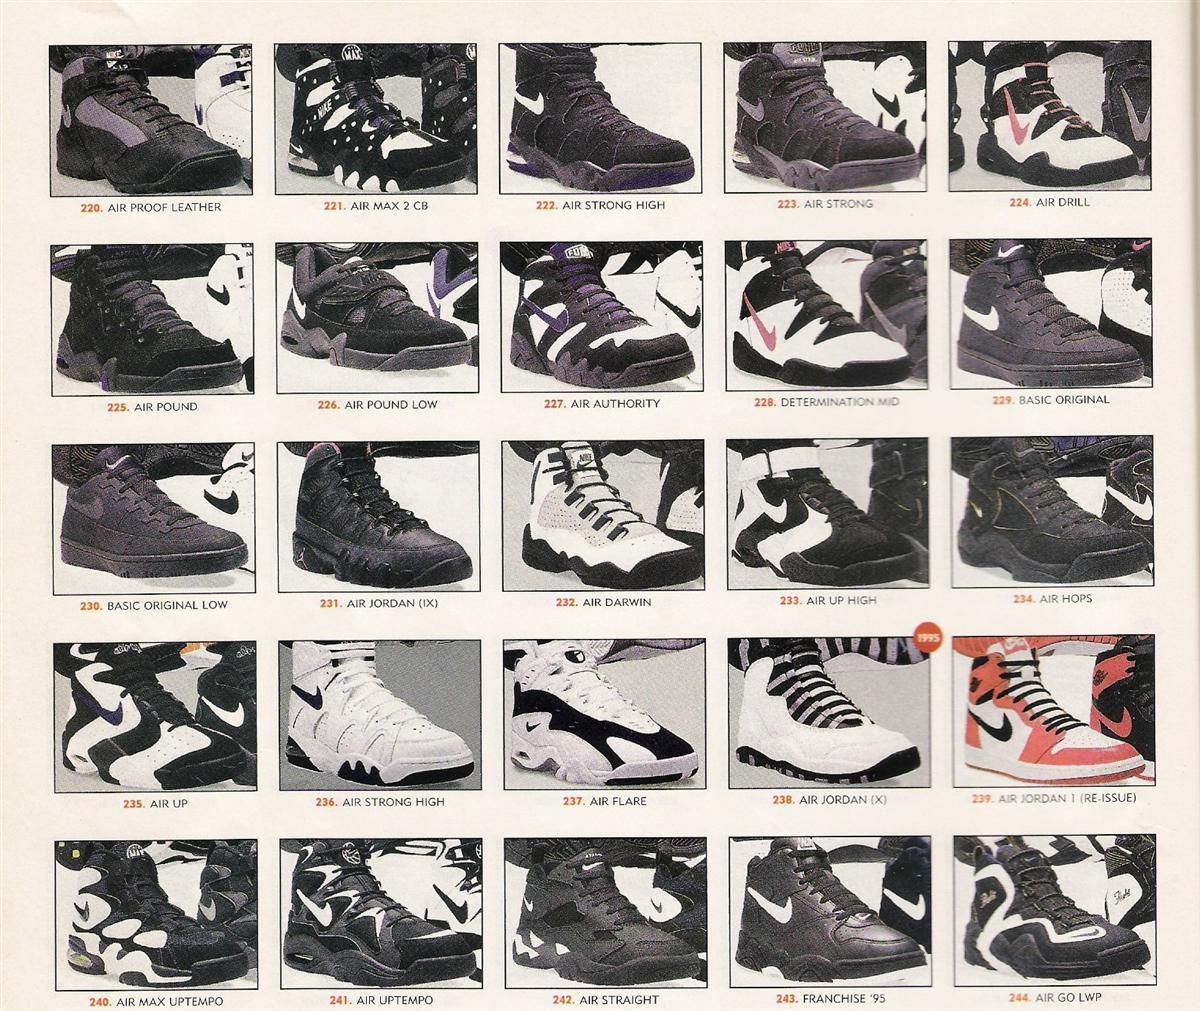 quality design f3ae8 01fb2 1994 Nike Catalog. 1994 Nike Catalog Air Max ...